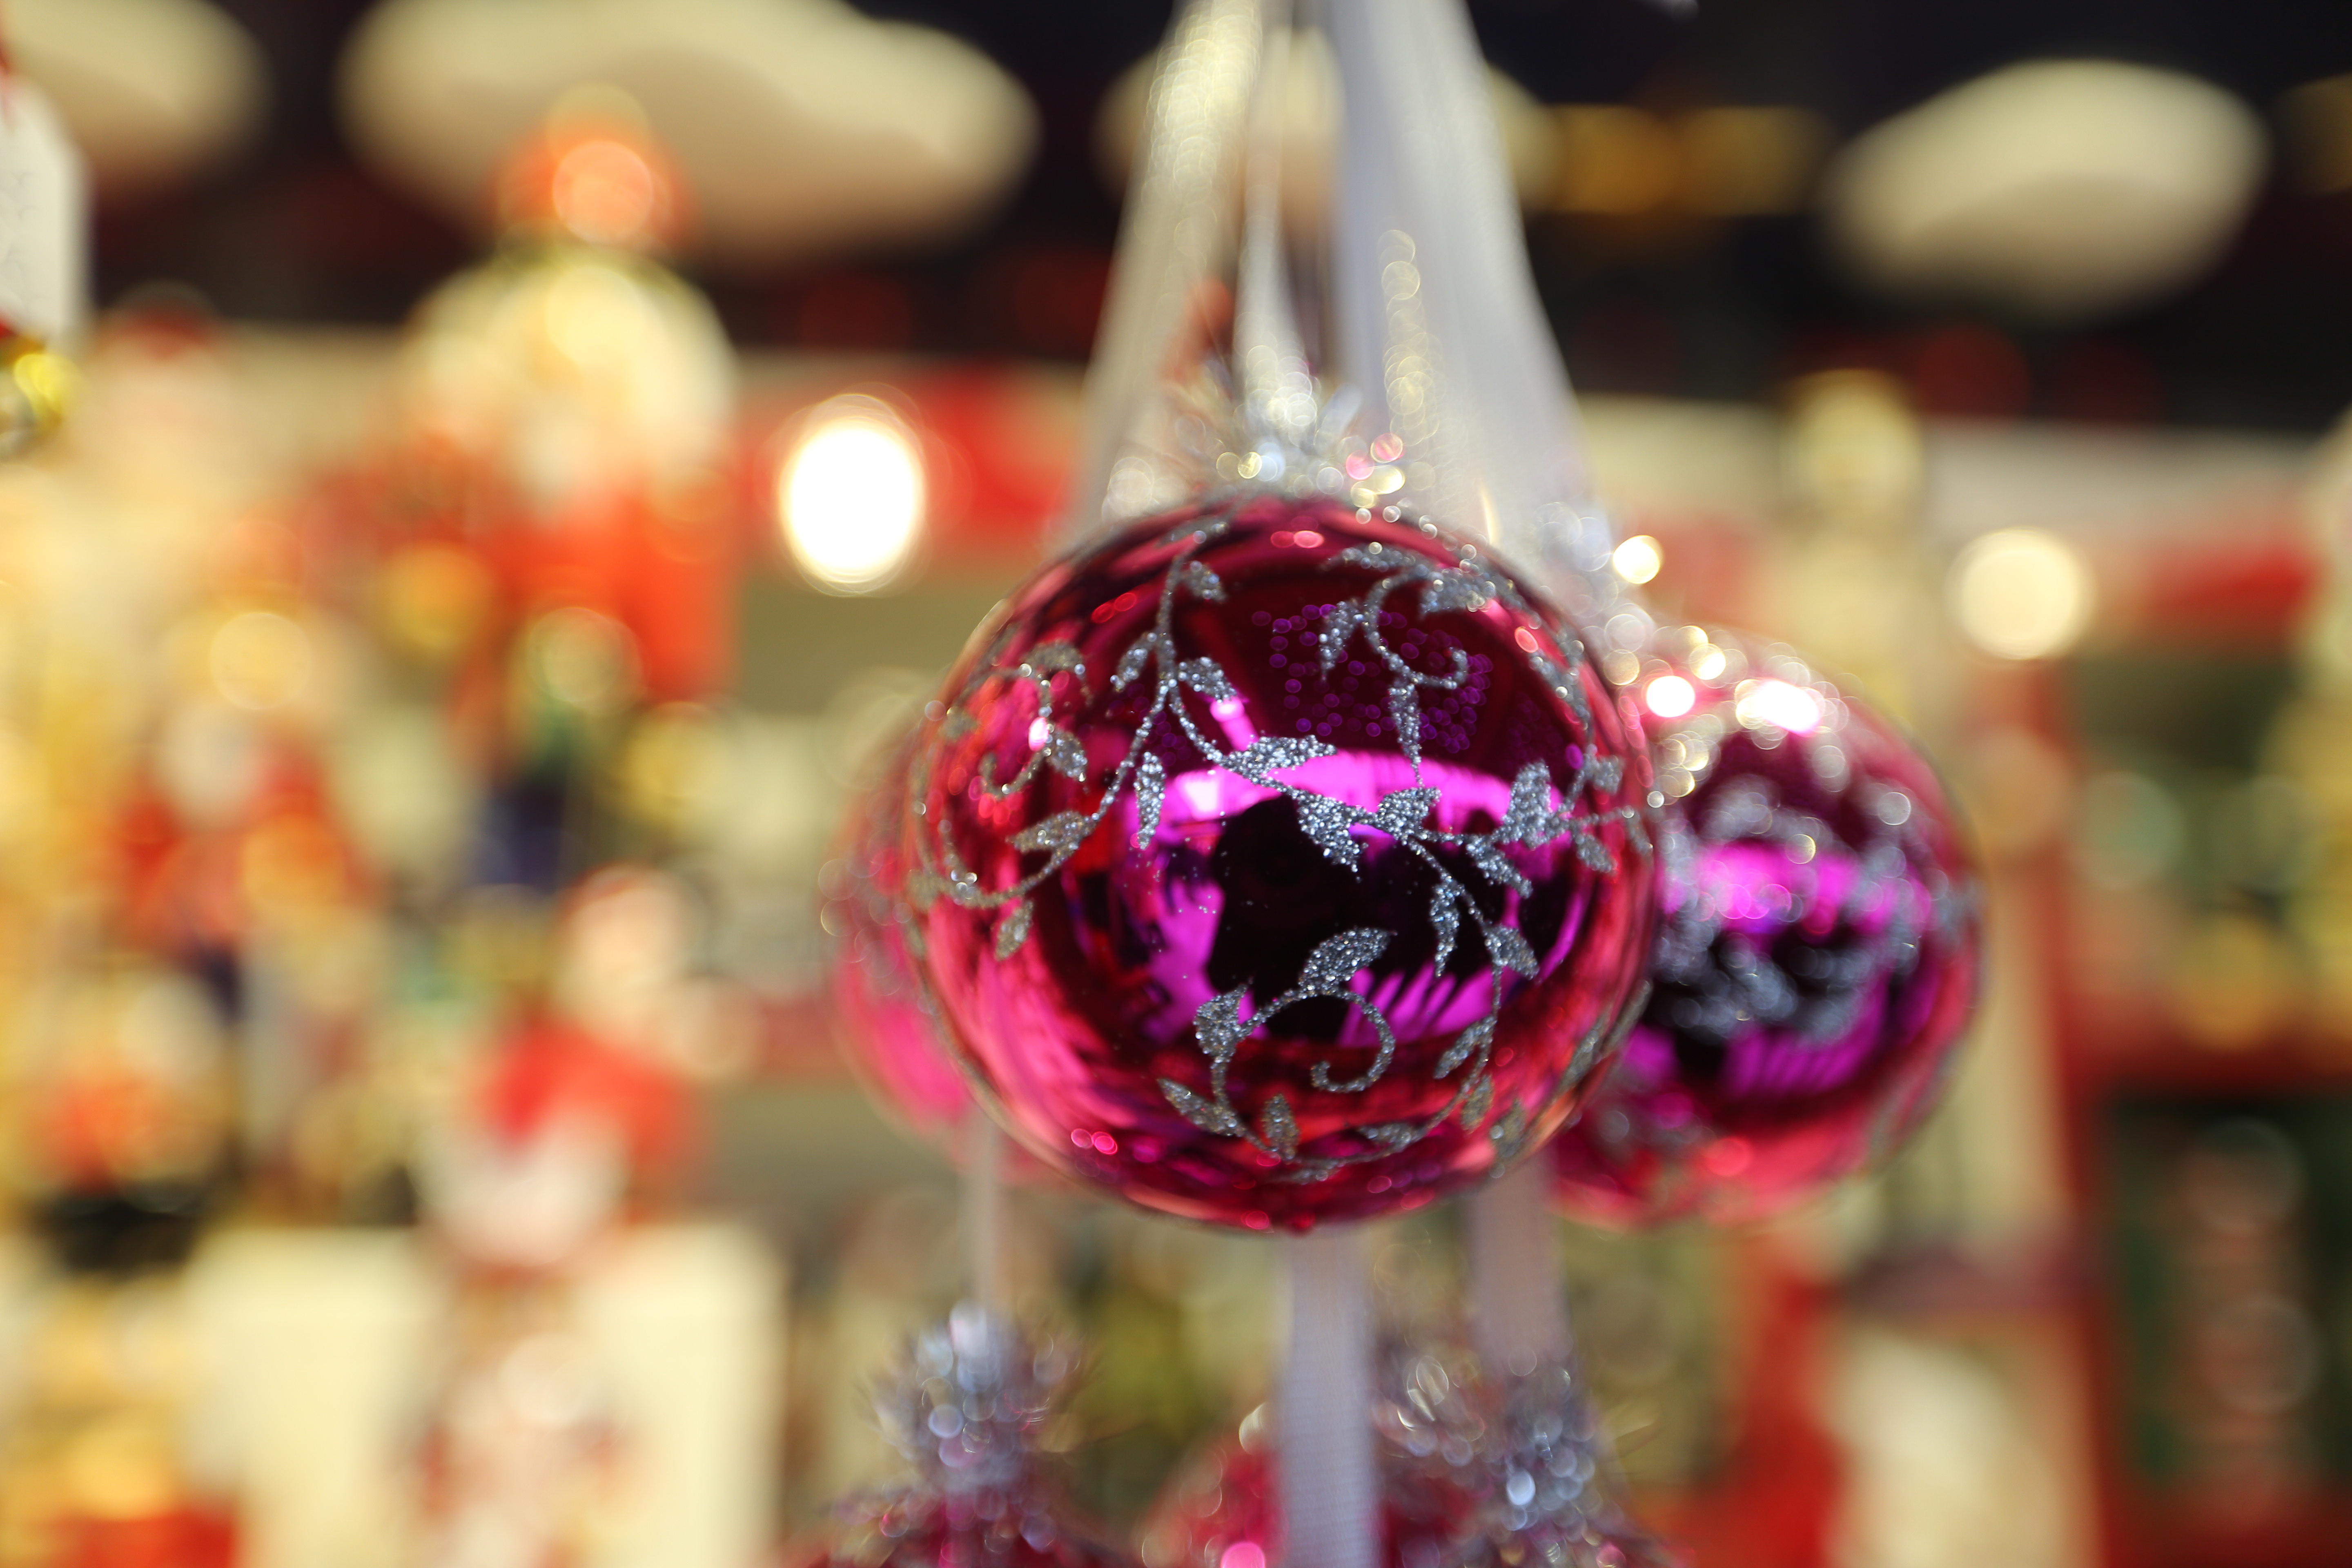 Christmas tree balls at the Marienplatz Christmas Market in Munich, Germany, on 22 December 2017. (Photo by Alexander Pohl/NurPhoto via Getty Images)